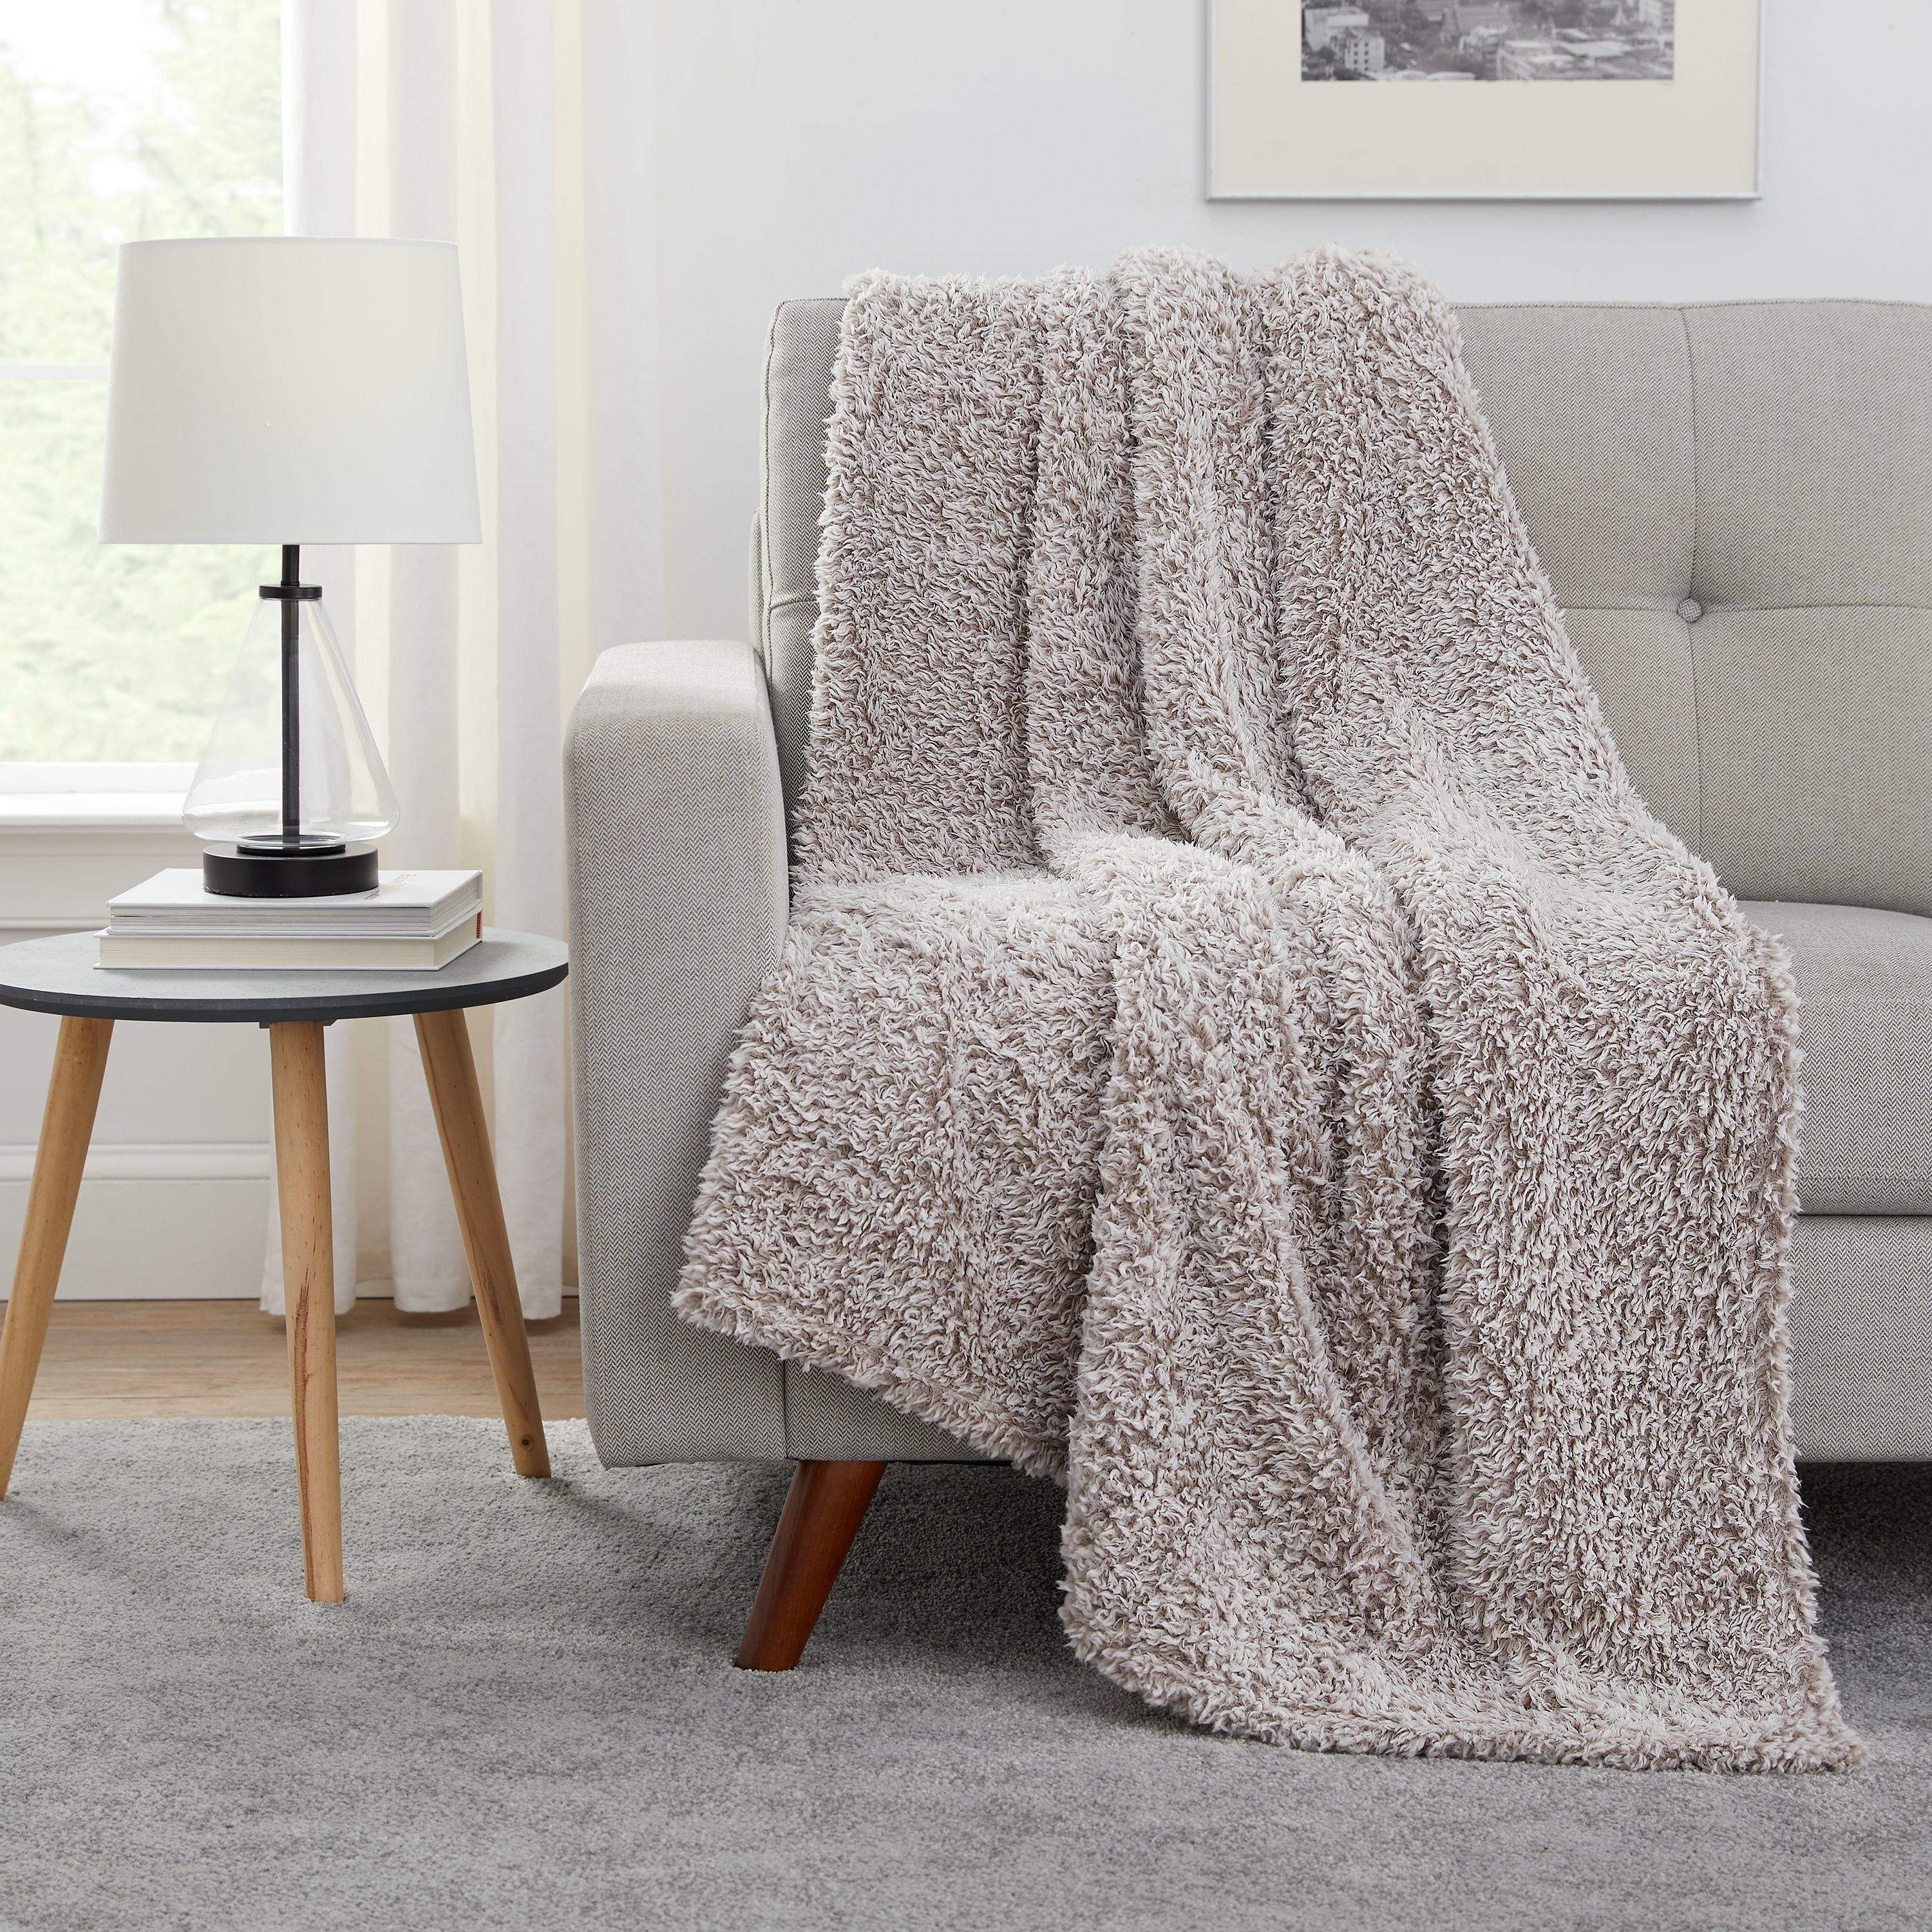 The sherpa throw in light brown draped over a couch